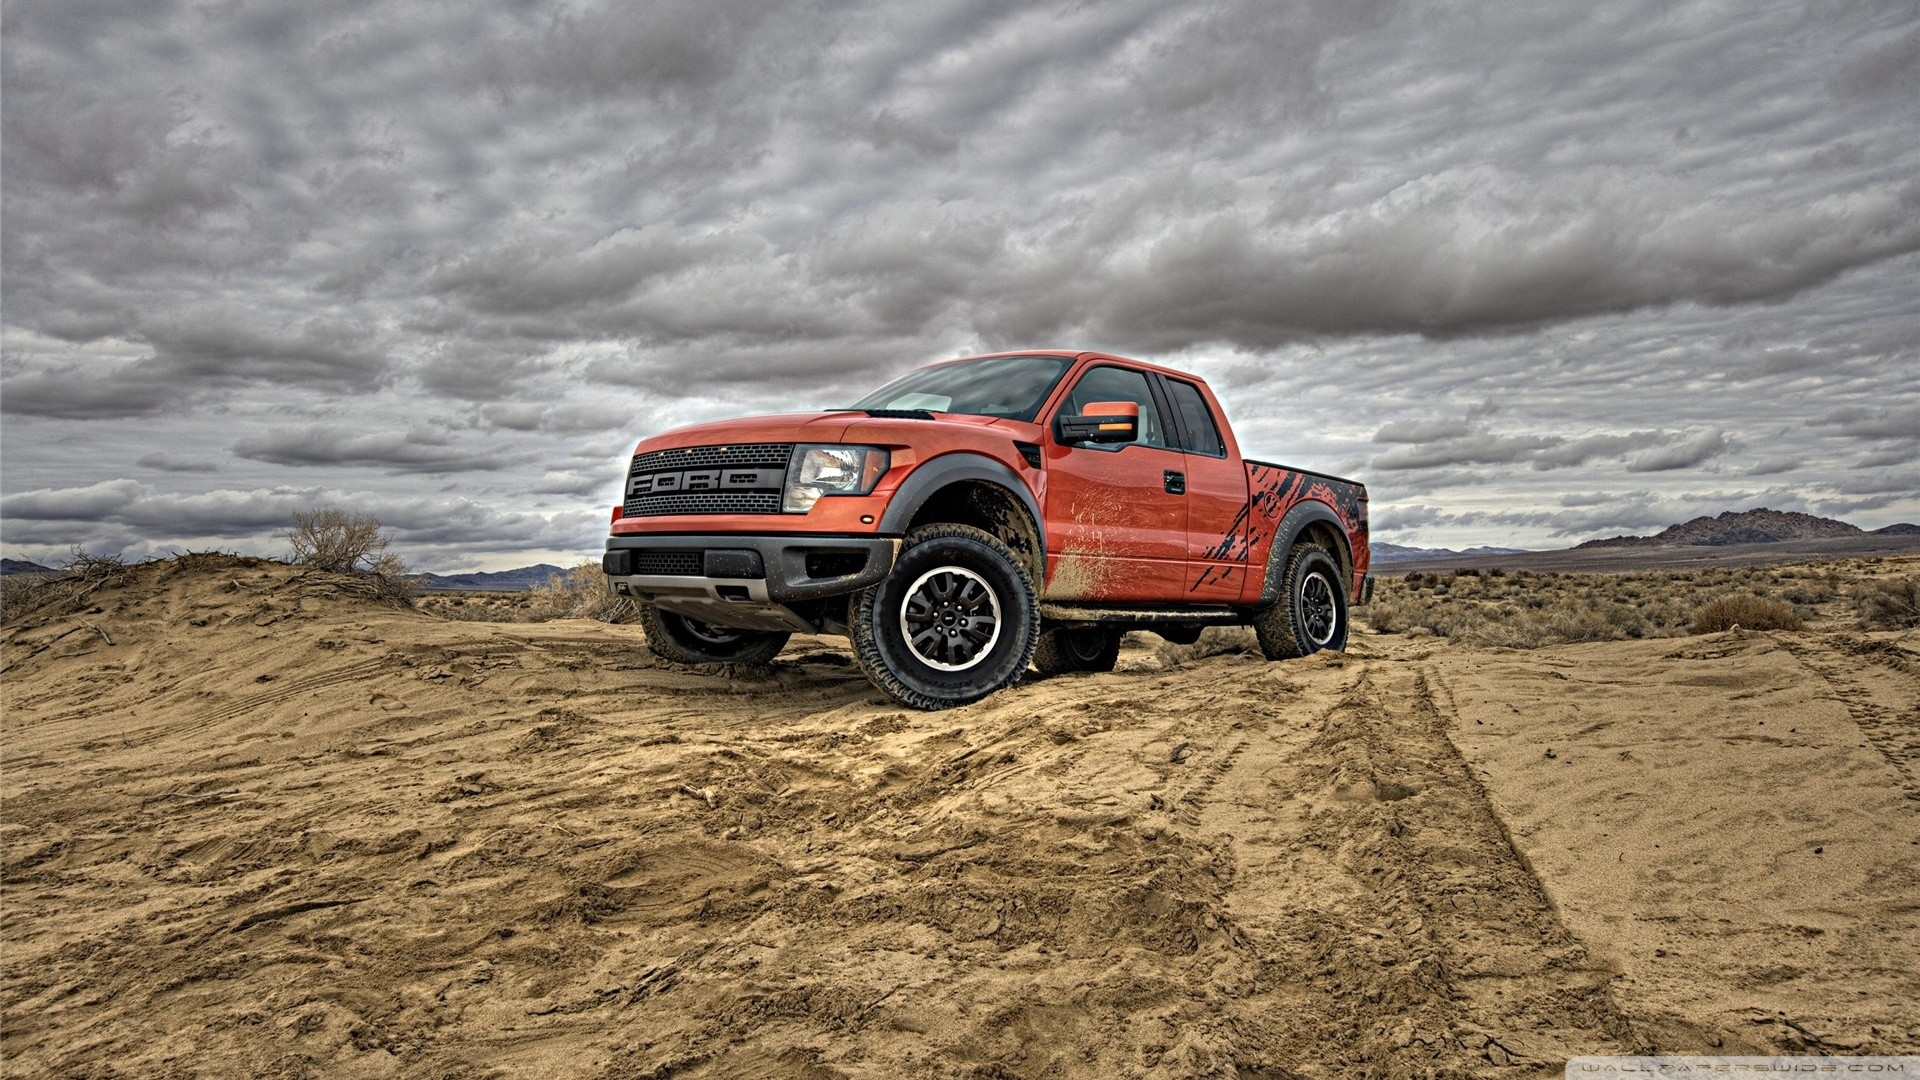 1920x1080 Ford F-150 Wallpapers